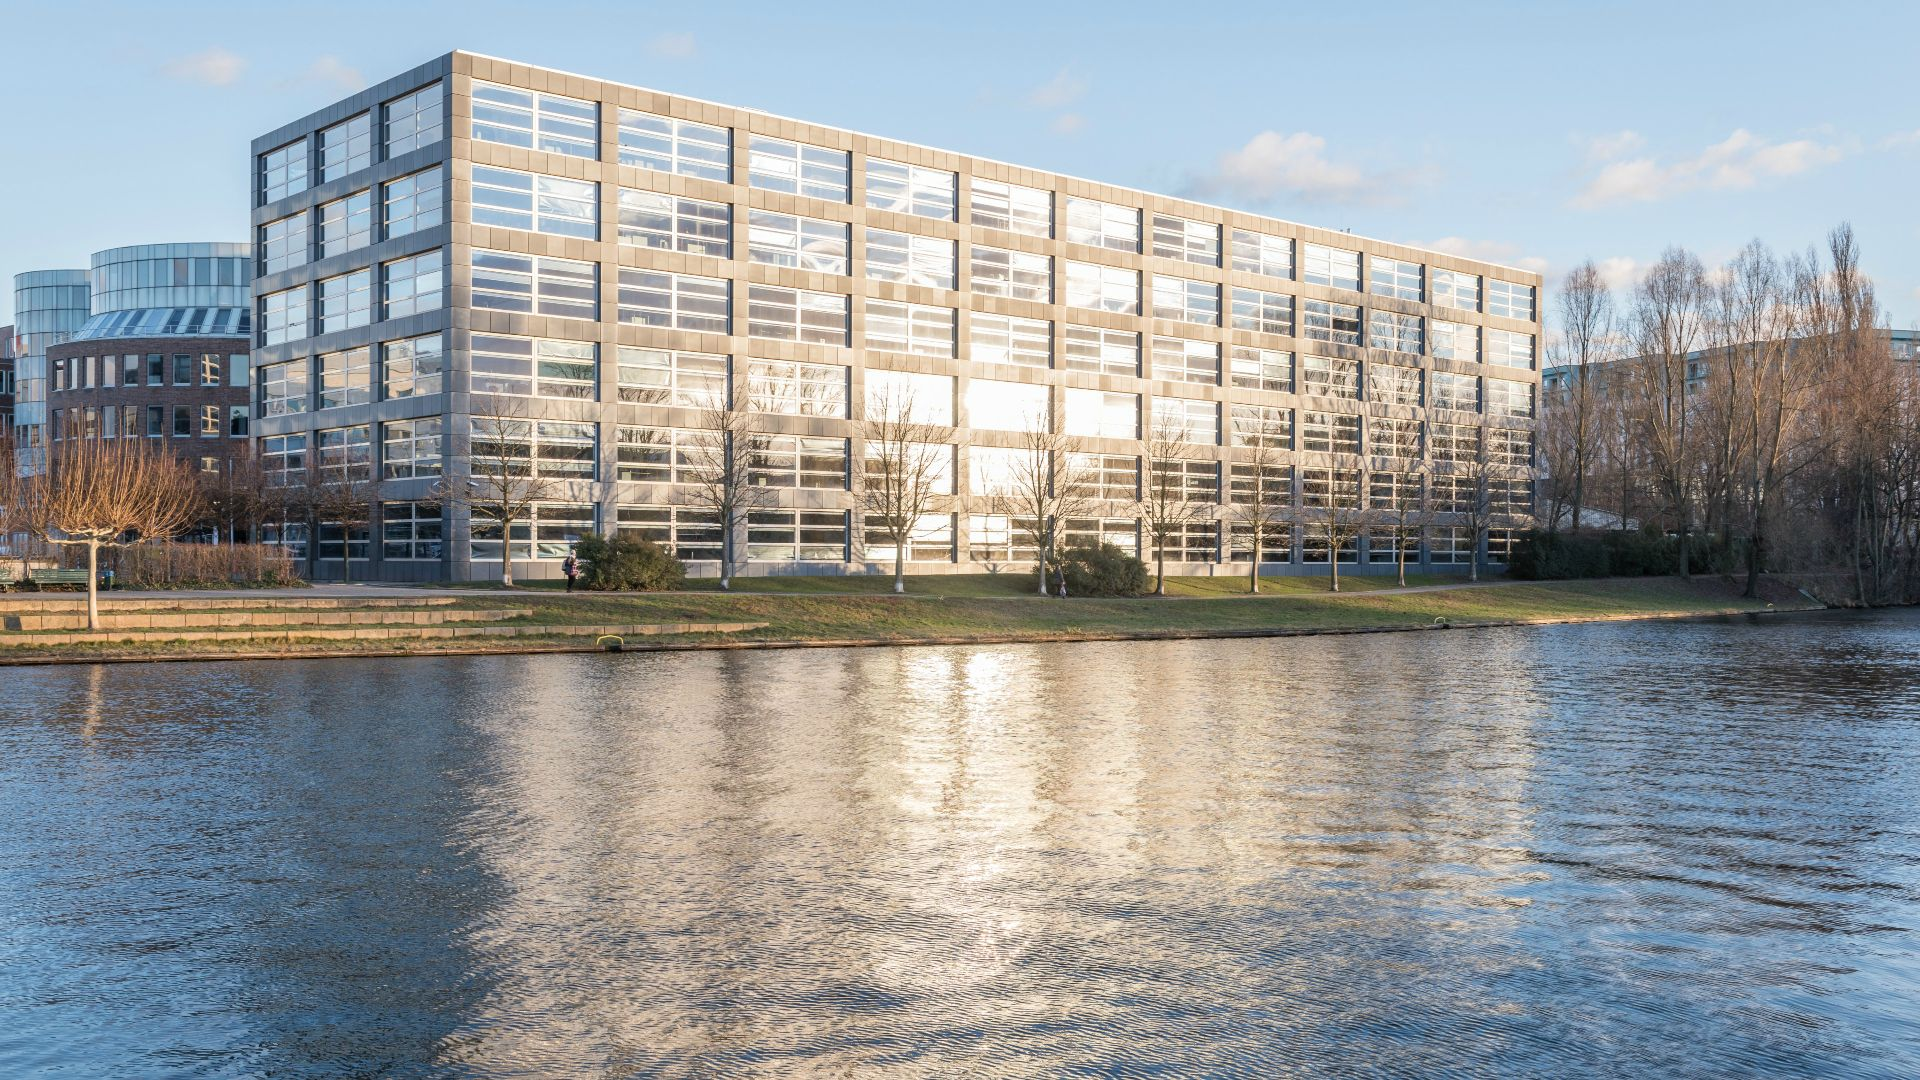 LBBW Landesbank Baden-Württemberg has sold an office building in Berlin to Wealthcap GmbH